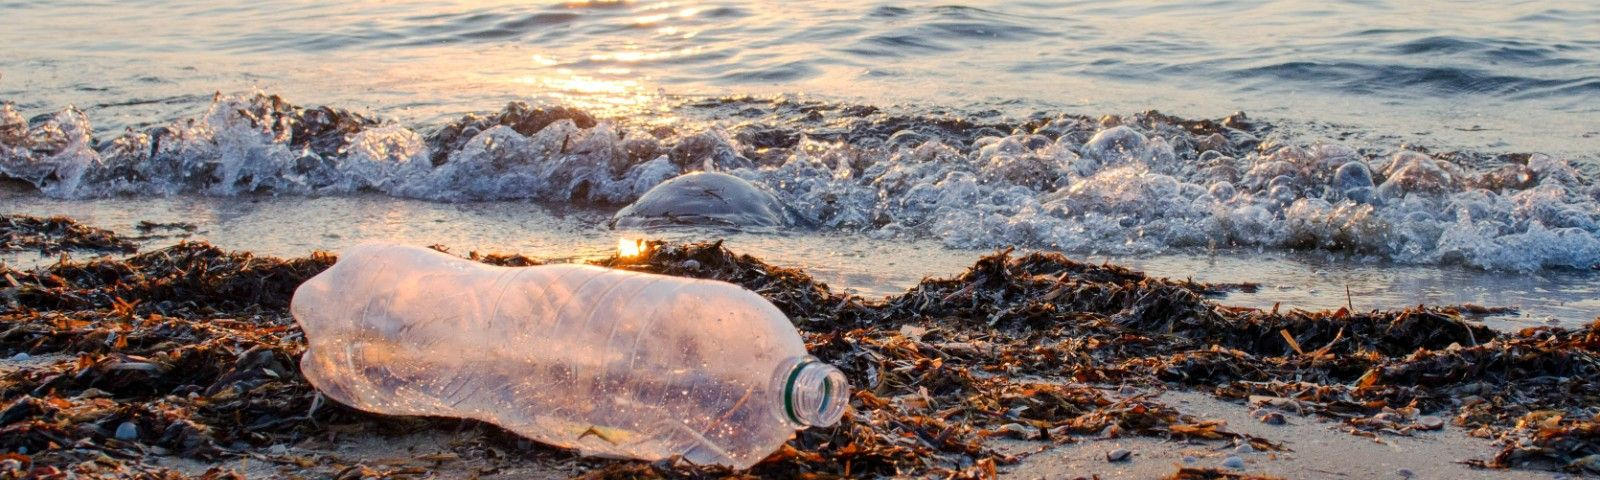 Blue Vision? Progress by the G20 on marine plastic pollution